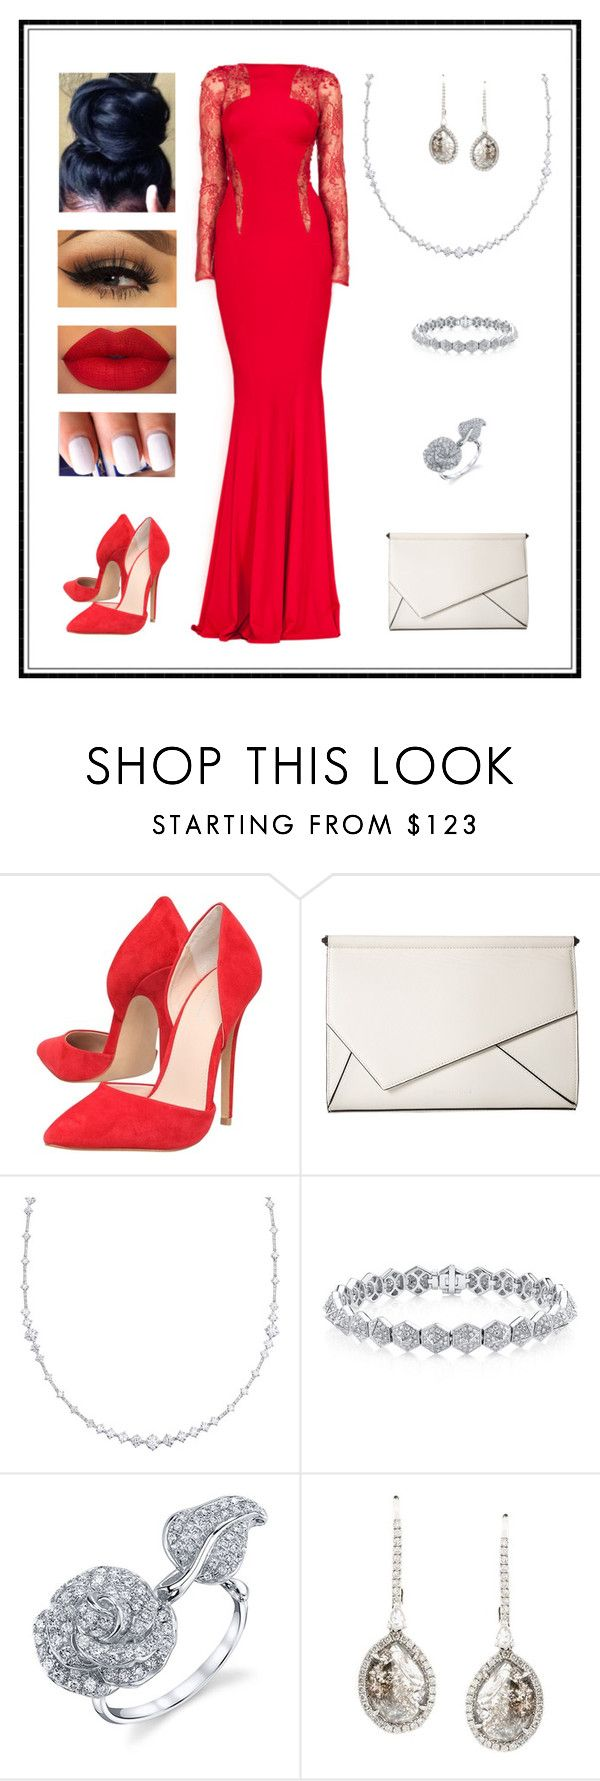 """""""Untitled # 77"""" by binasa87 ❤ liked on Polyvore featuring Zuhair Murad, Carvela, Kendall + Kylie, De Beers, Borgioni and Saqqara"""